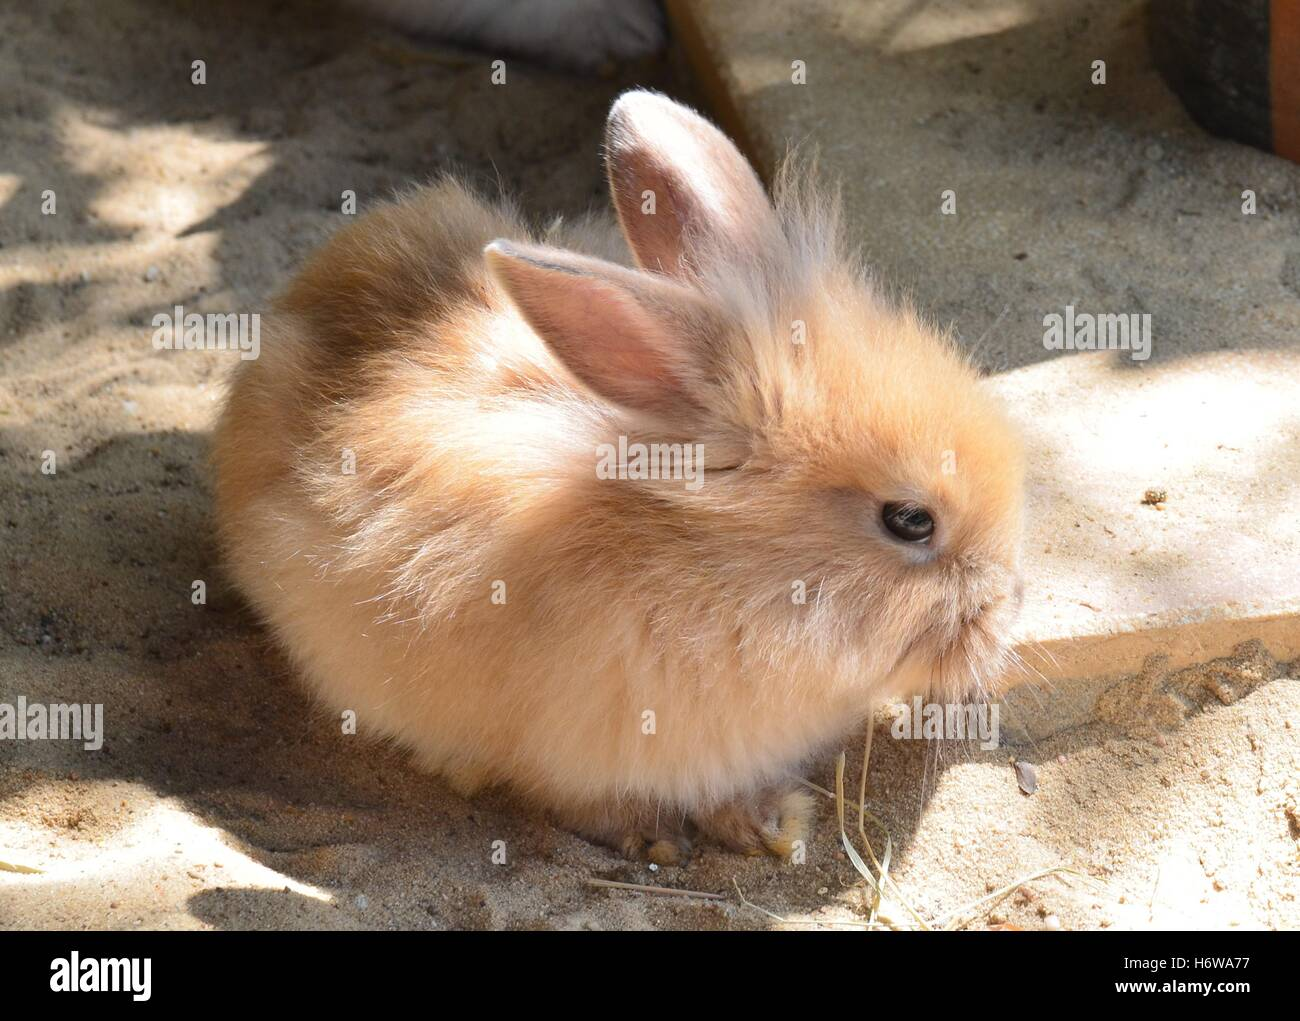 baby rabbits for free. stock photo - animal mammal rabbit hare cub baby rabbits bunny nature shine shines bright lucent light serene luminous pet animals for free